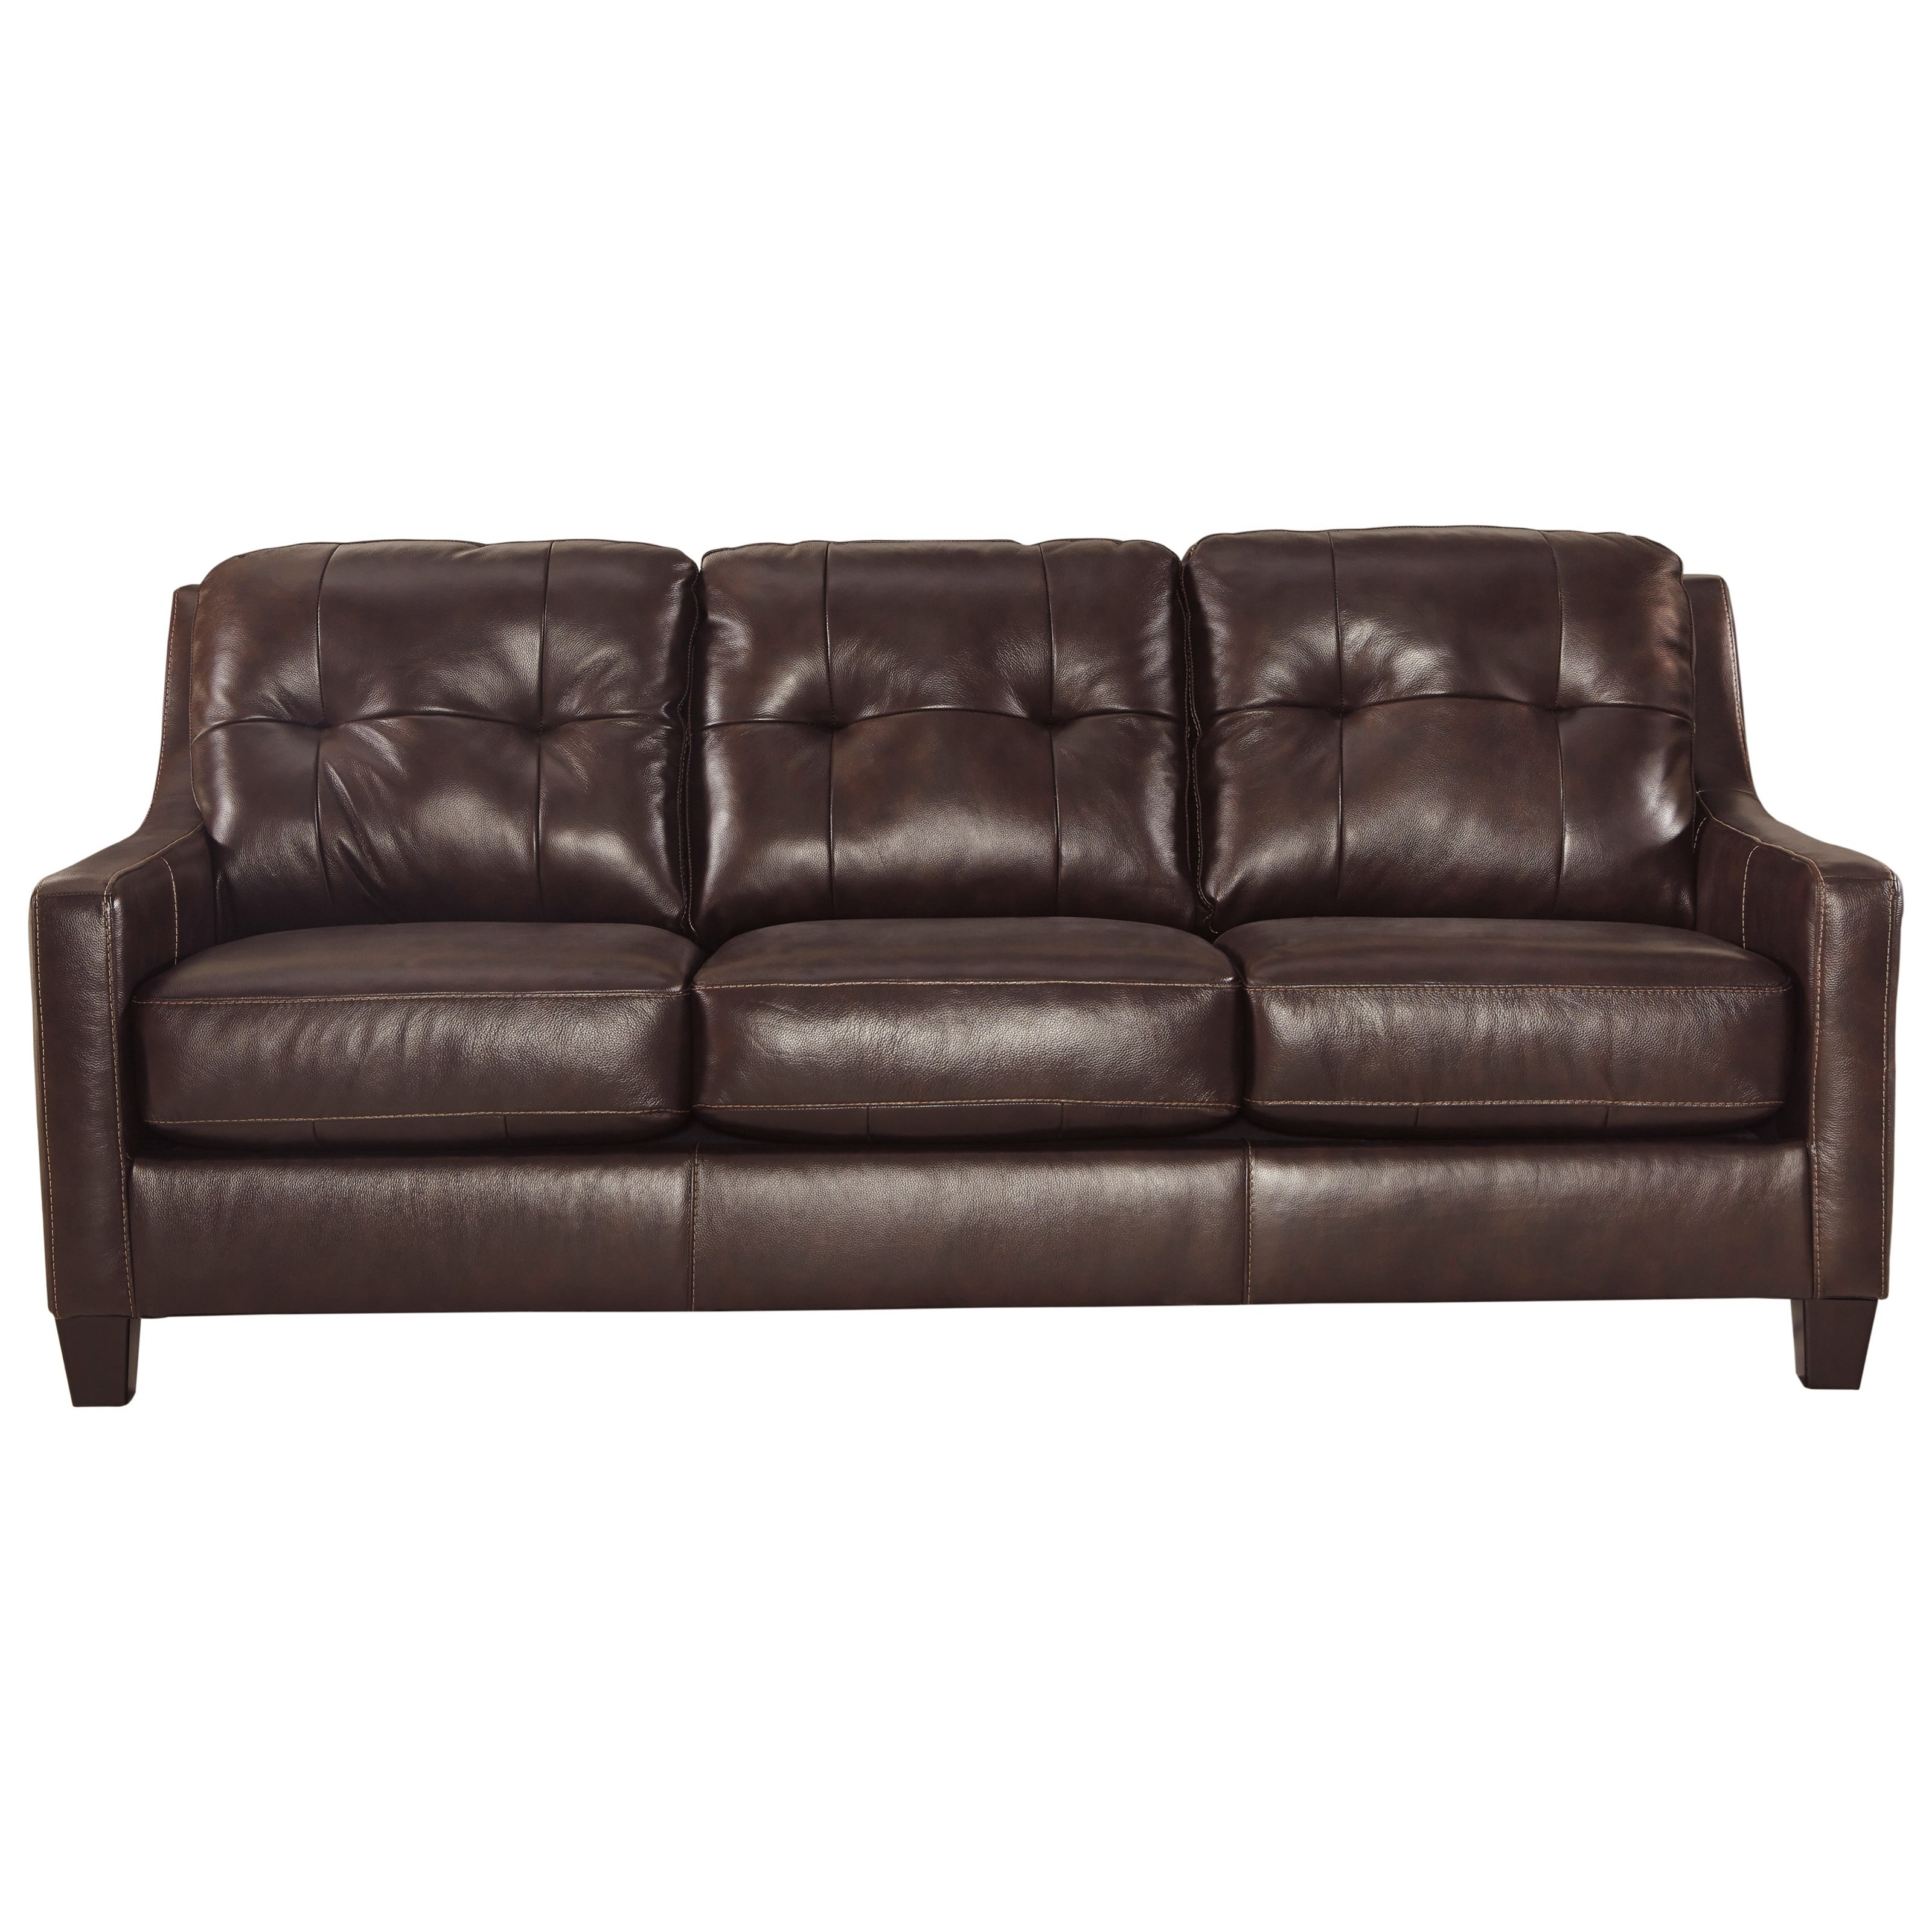 Contemporary Leather Match Sofa With Tufted Back U0026 Track Arms